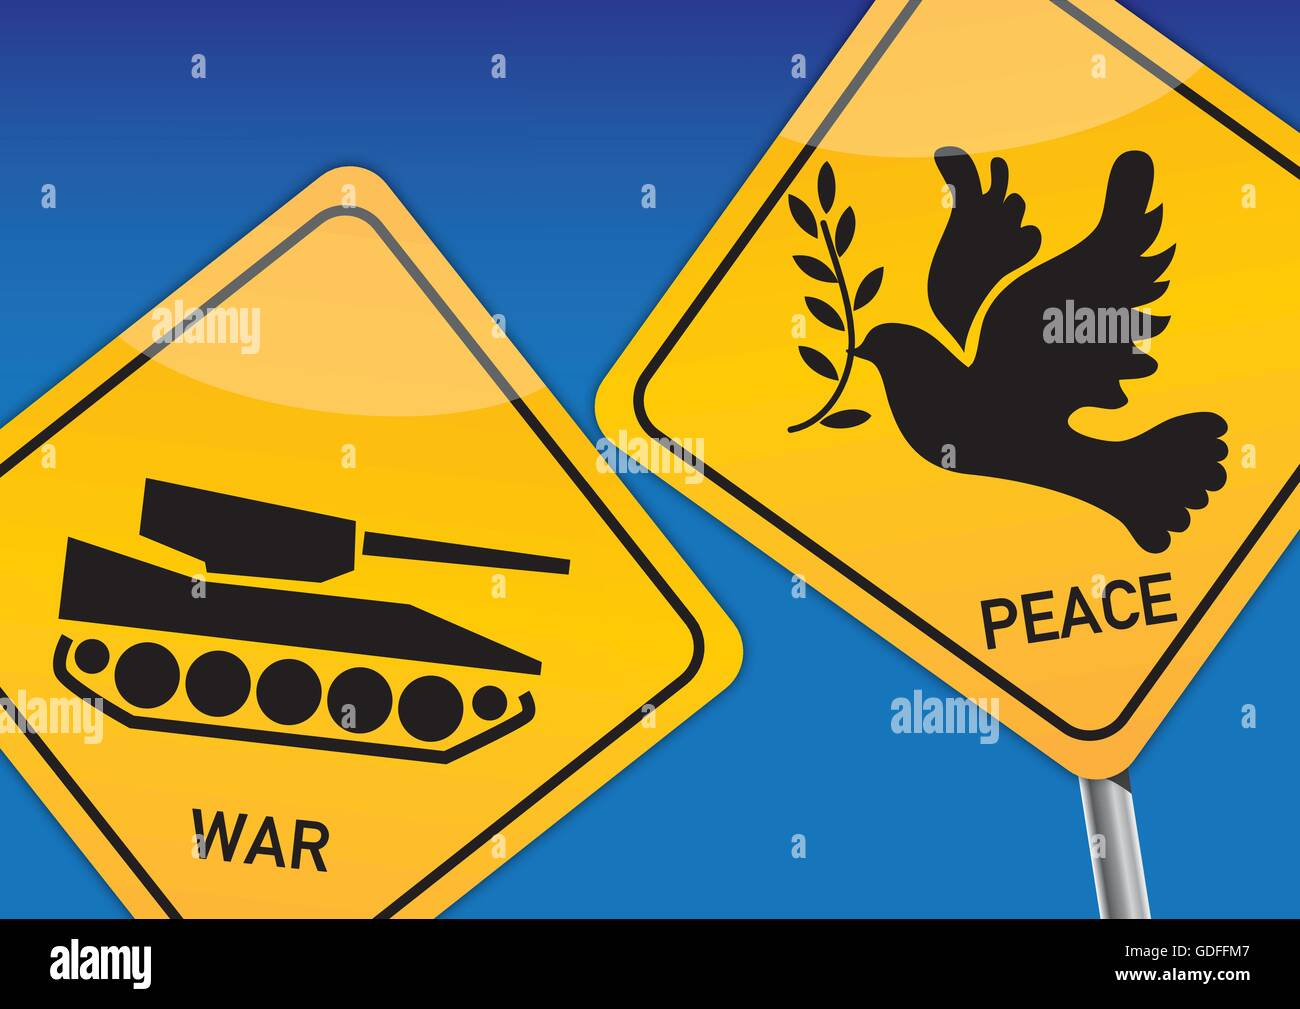 War and Peace, Vektor Illustration with icon images - Stock Vector